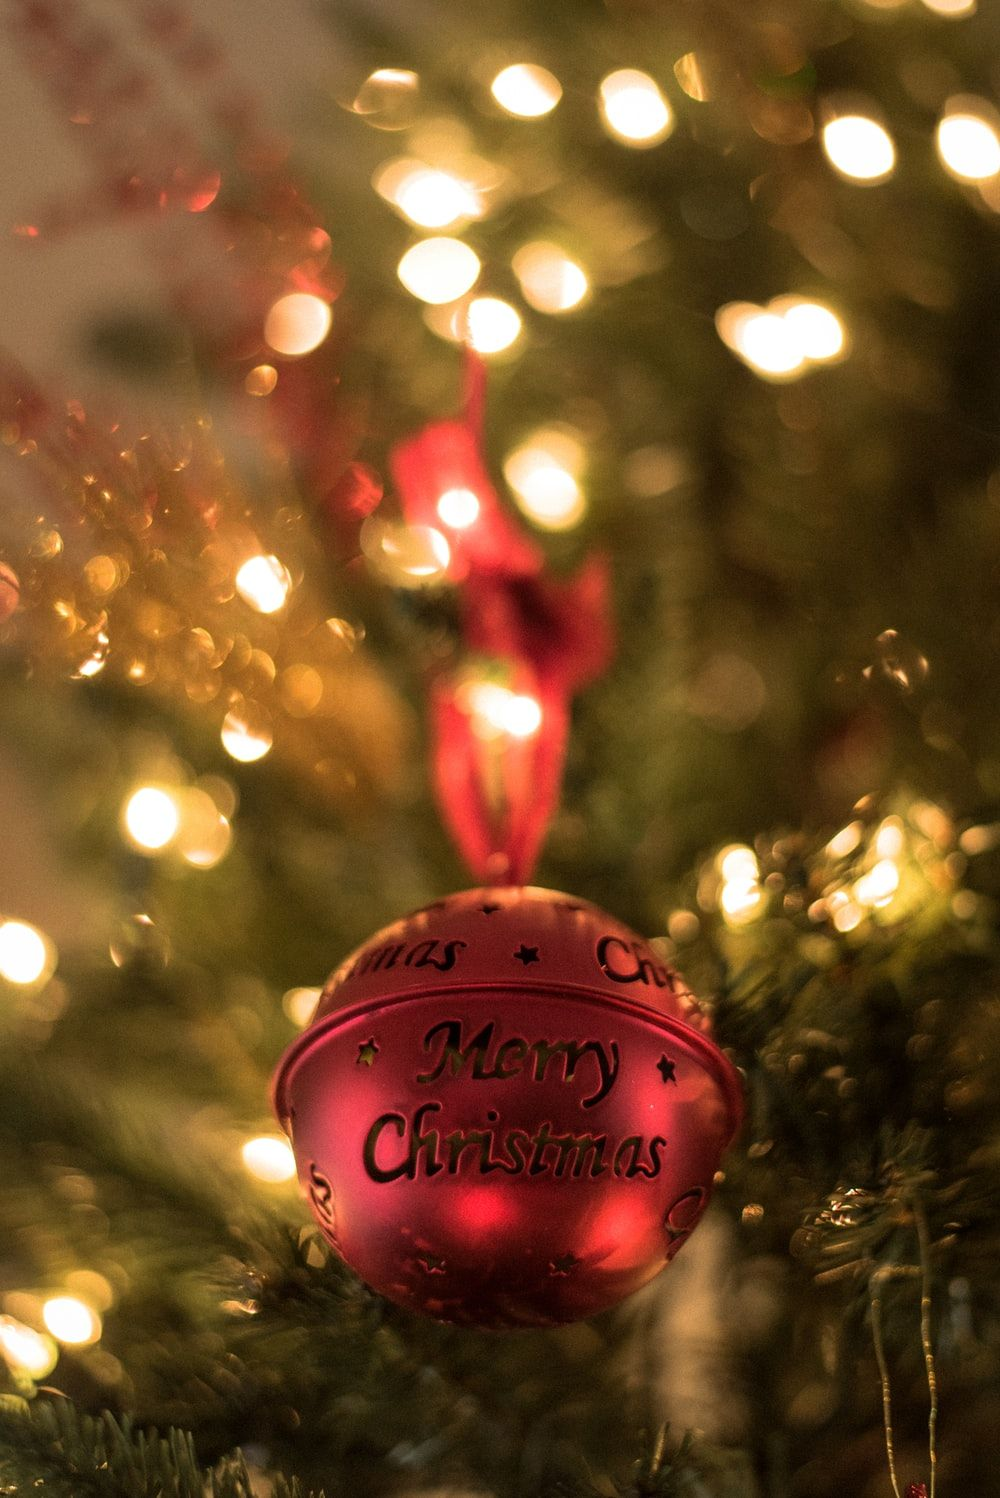 Christmas Wallpaper Xmas Pictures Free Download In 2020 Merry Christmas Images Merry Christmas Pictures Christmas Wallpaper Free